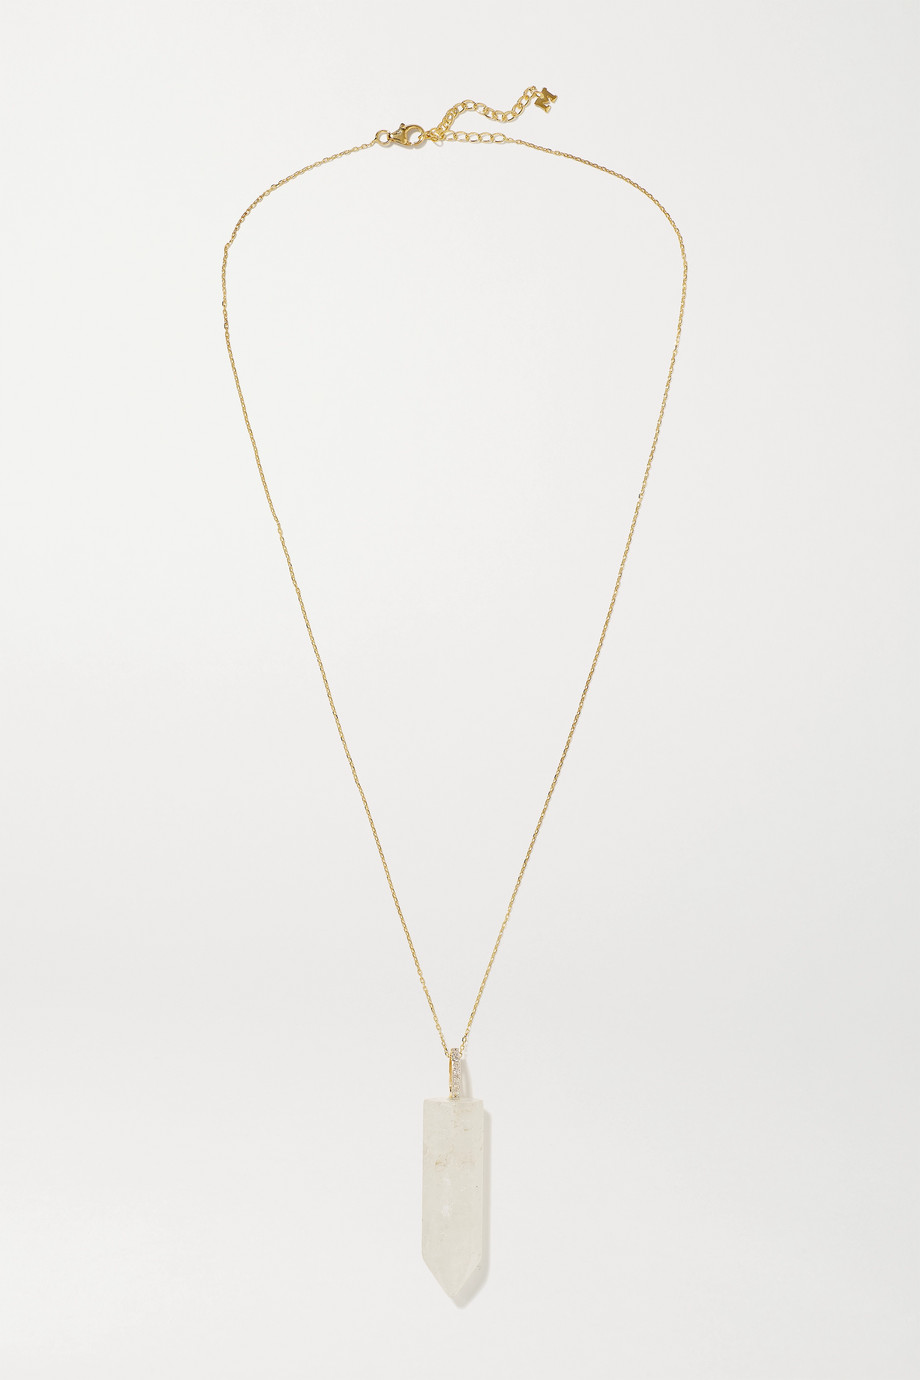 Mateo 14-karat gold, quartz and diamond necklace